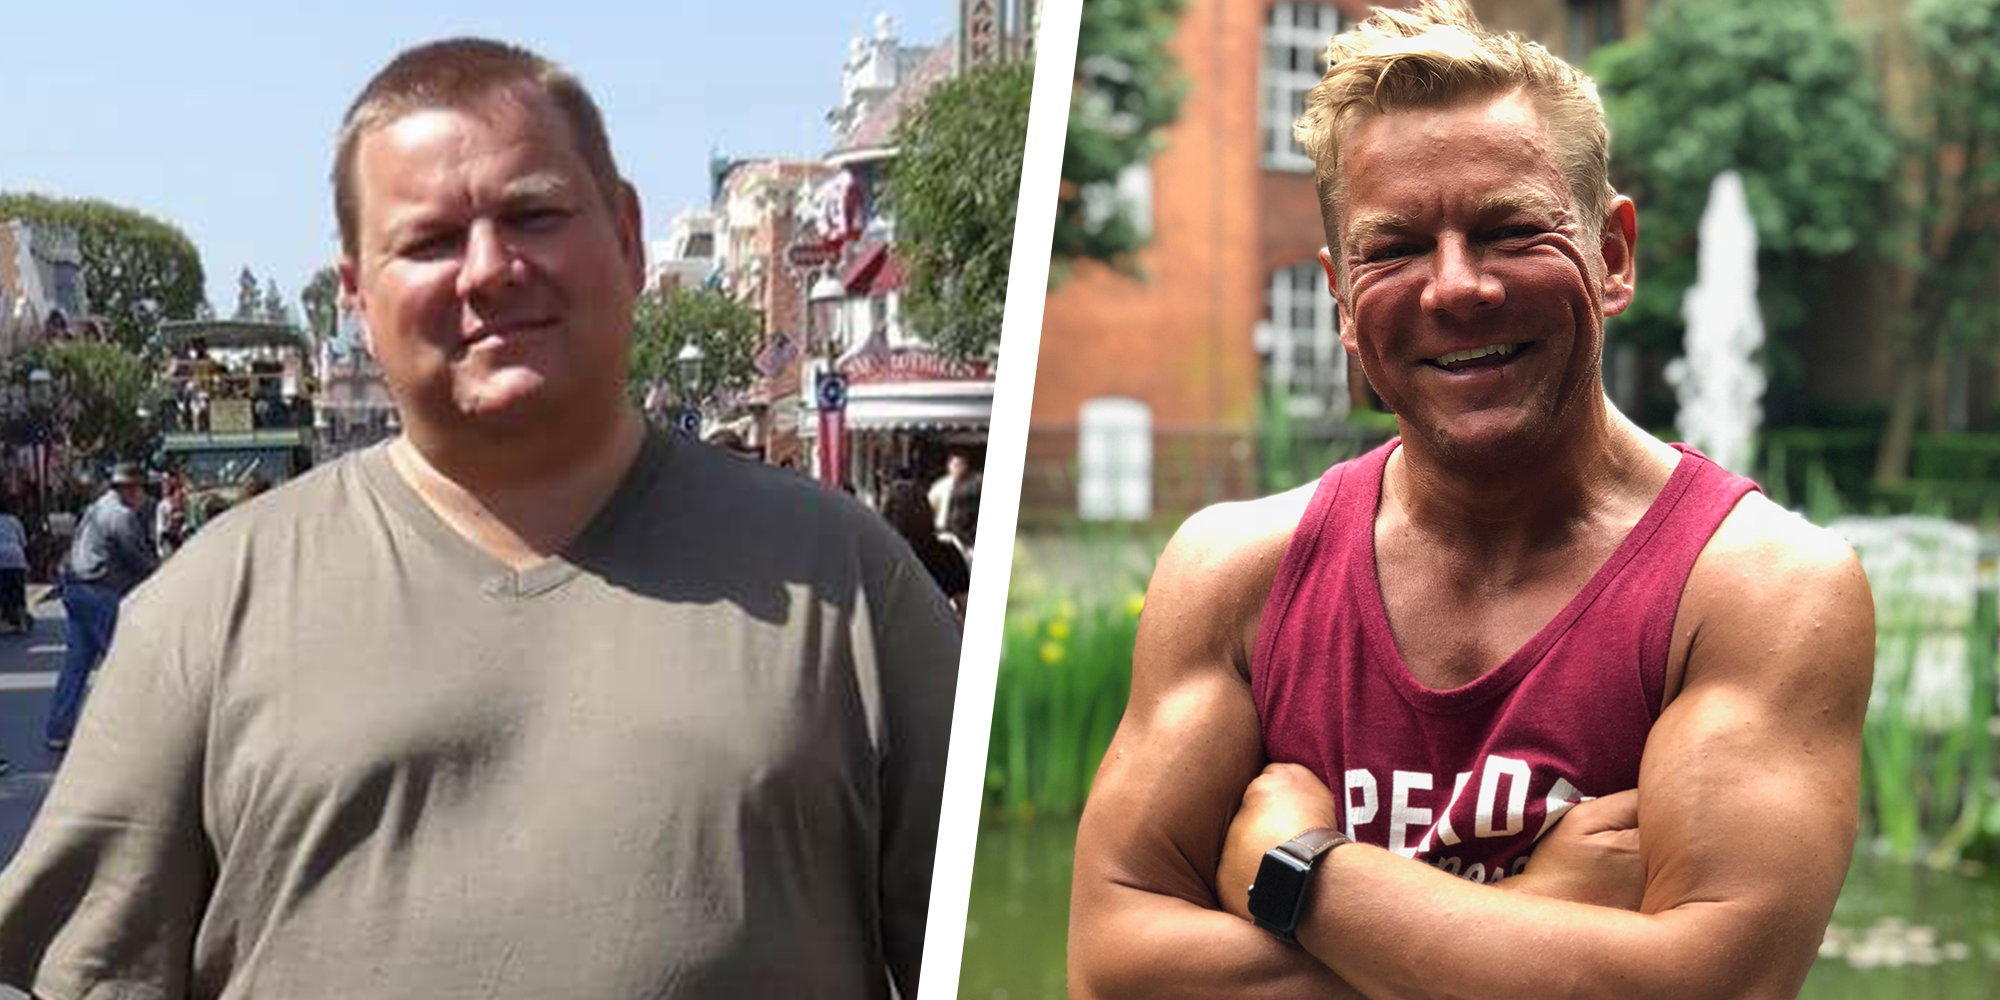 These Small Diet Changes Helped This Guy Lose More Than 100 Pounds